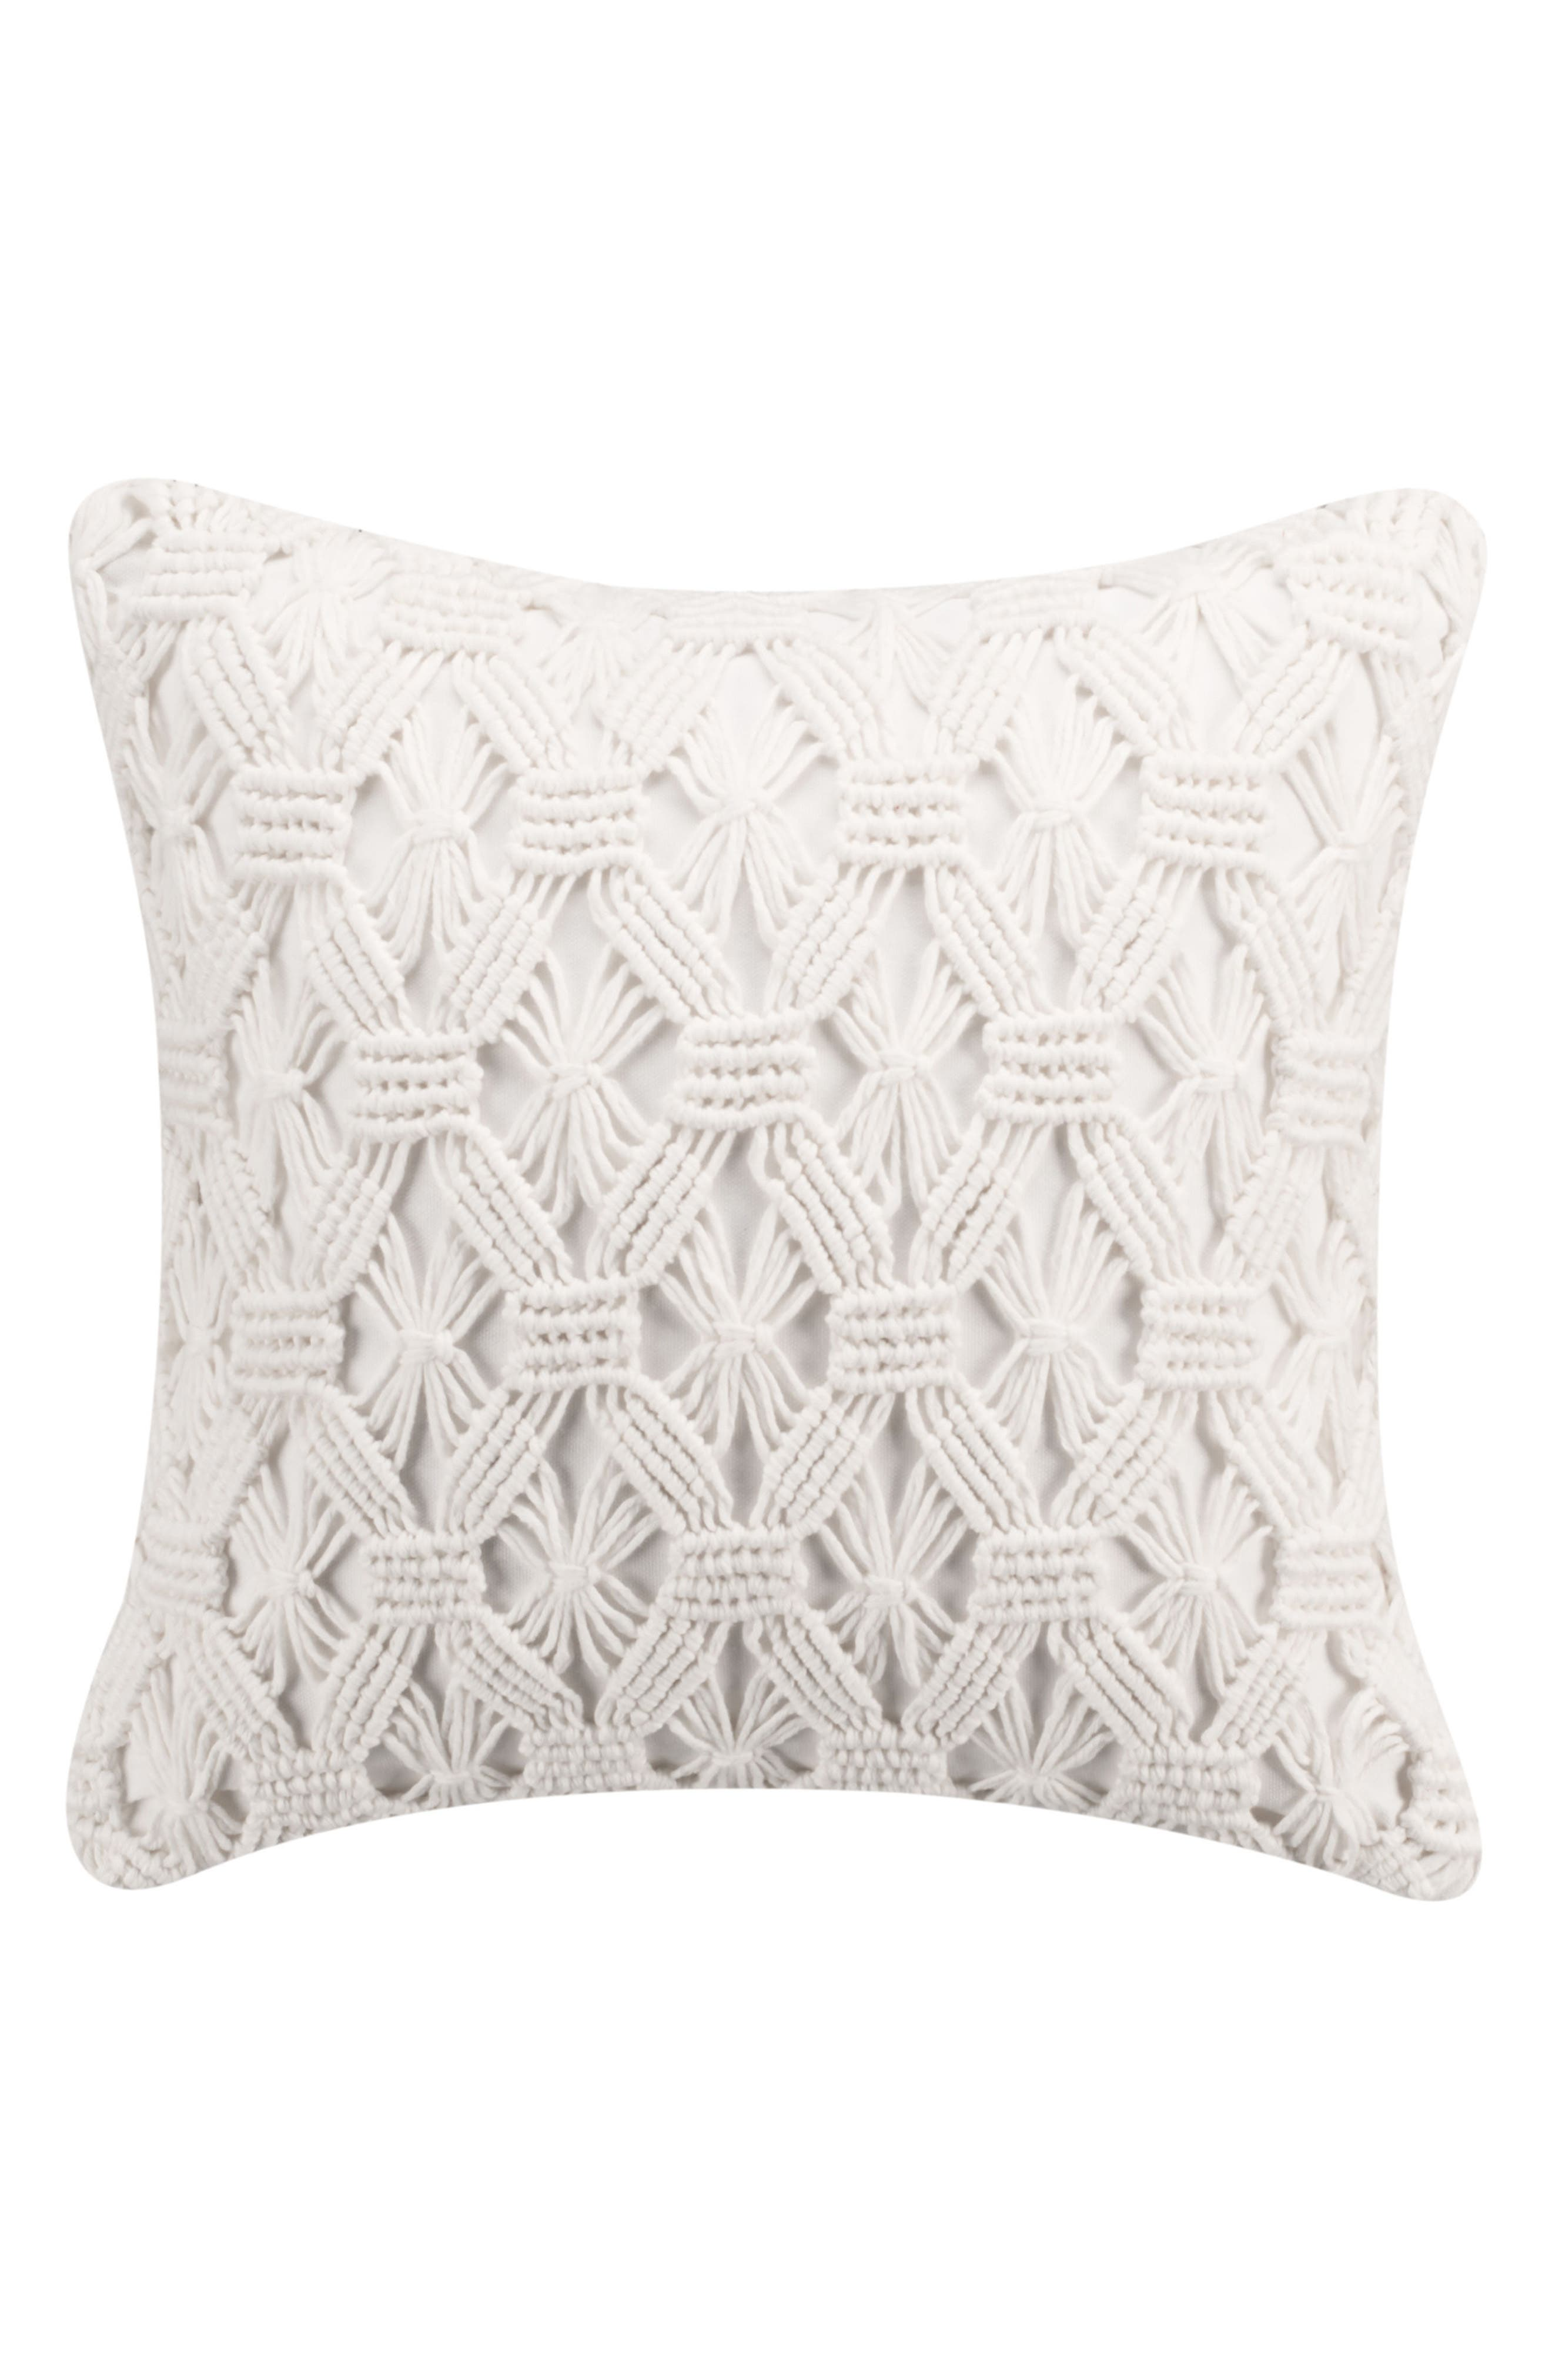 Alternate Image 1 Selected - cupcakes & cashmere Mosaic Tile Hand Knotted Accent Pillow